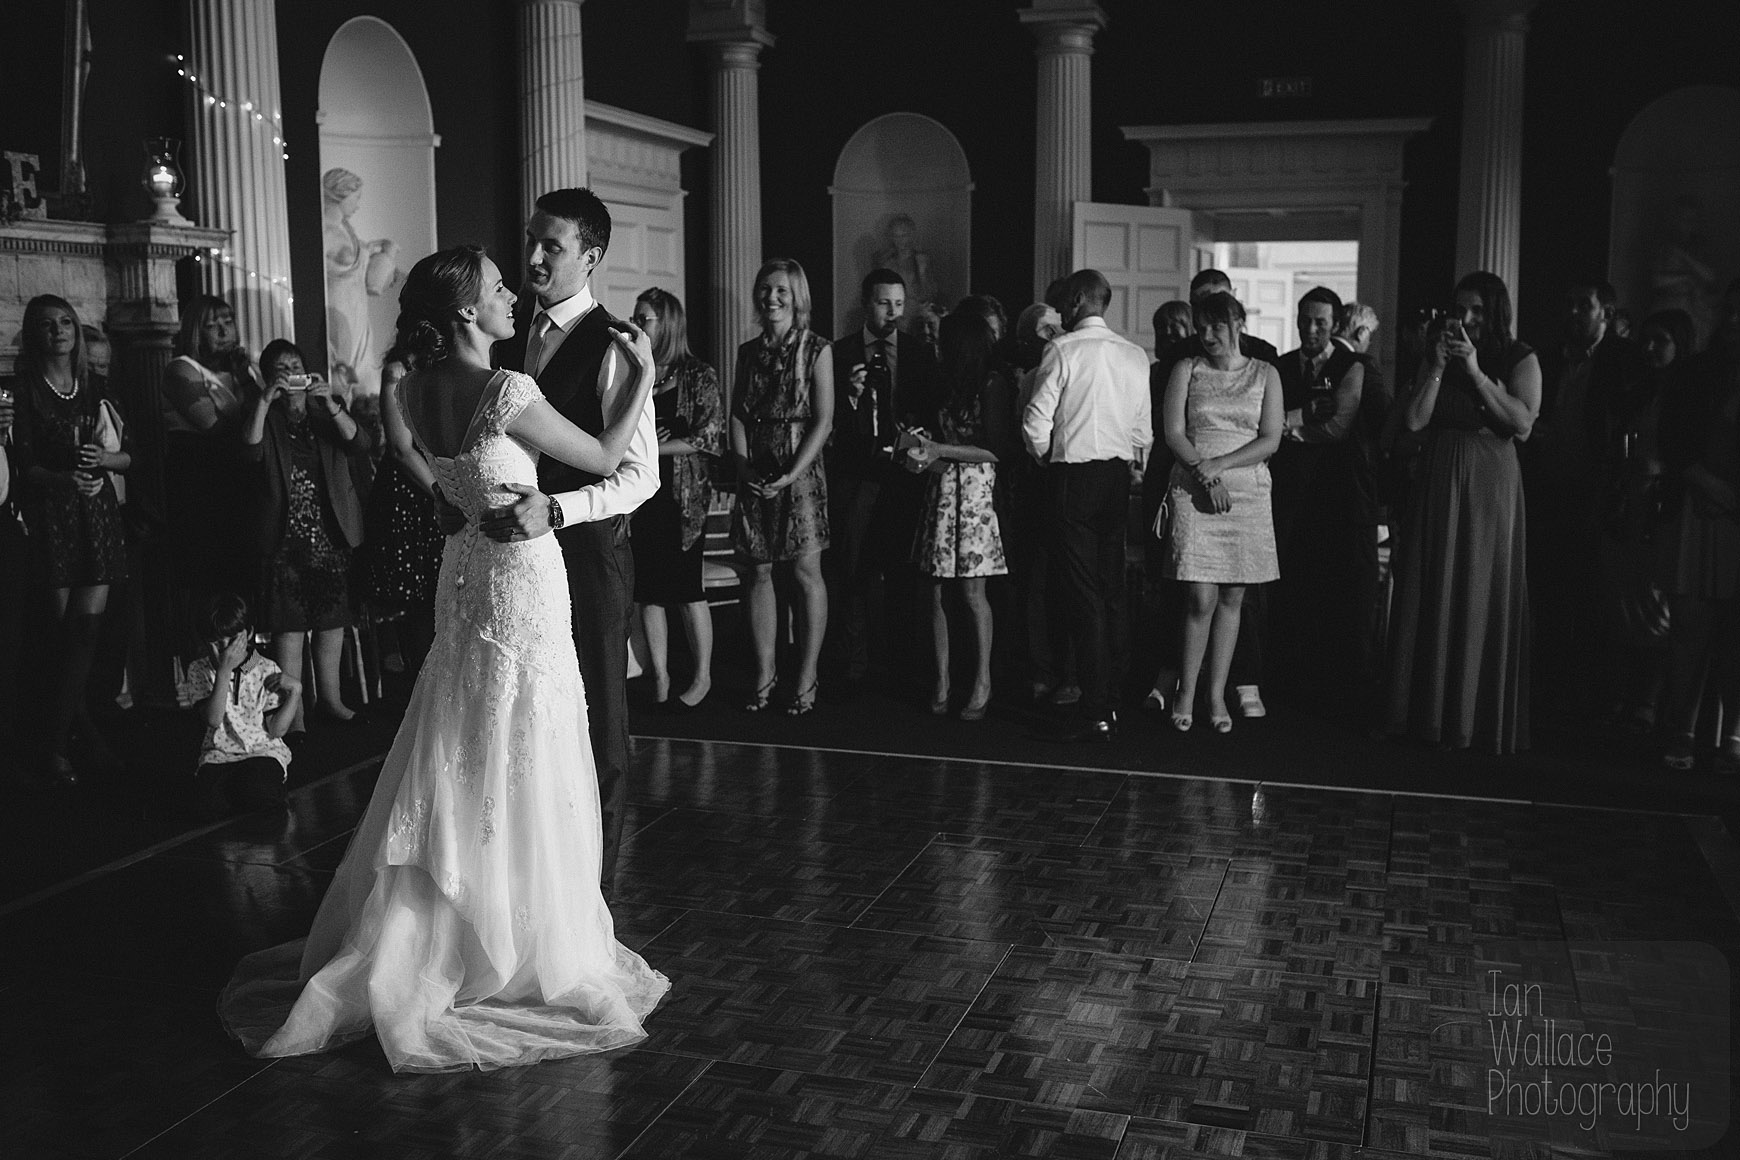 The first dance. Everyone watches. Not an iPad in sight.